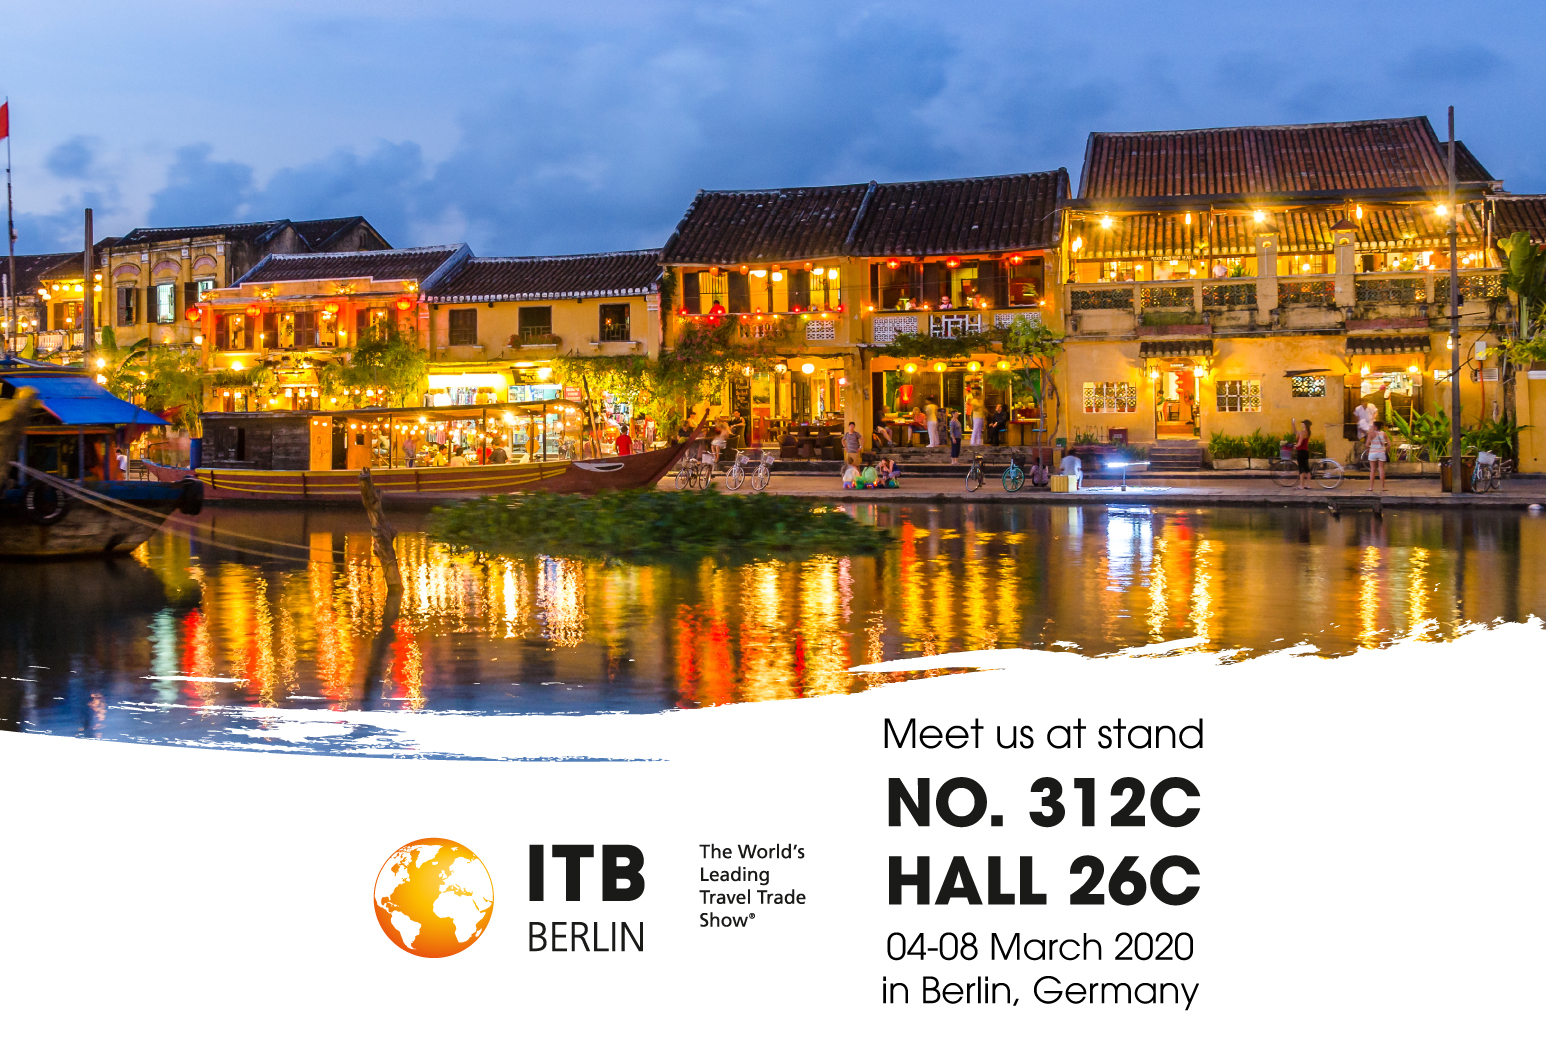 365 Travel attend ITB Berlin from 4 to 8 March, 2020